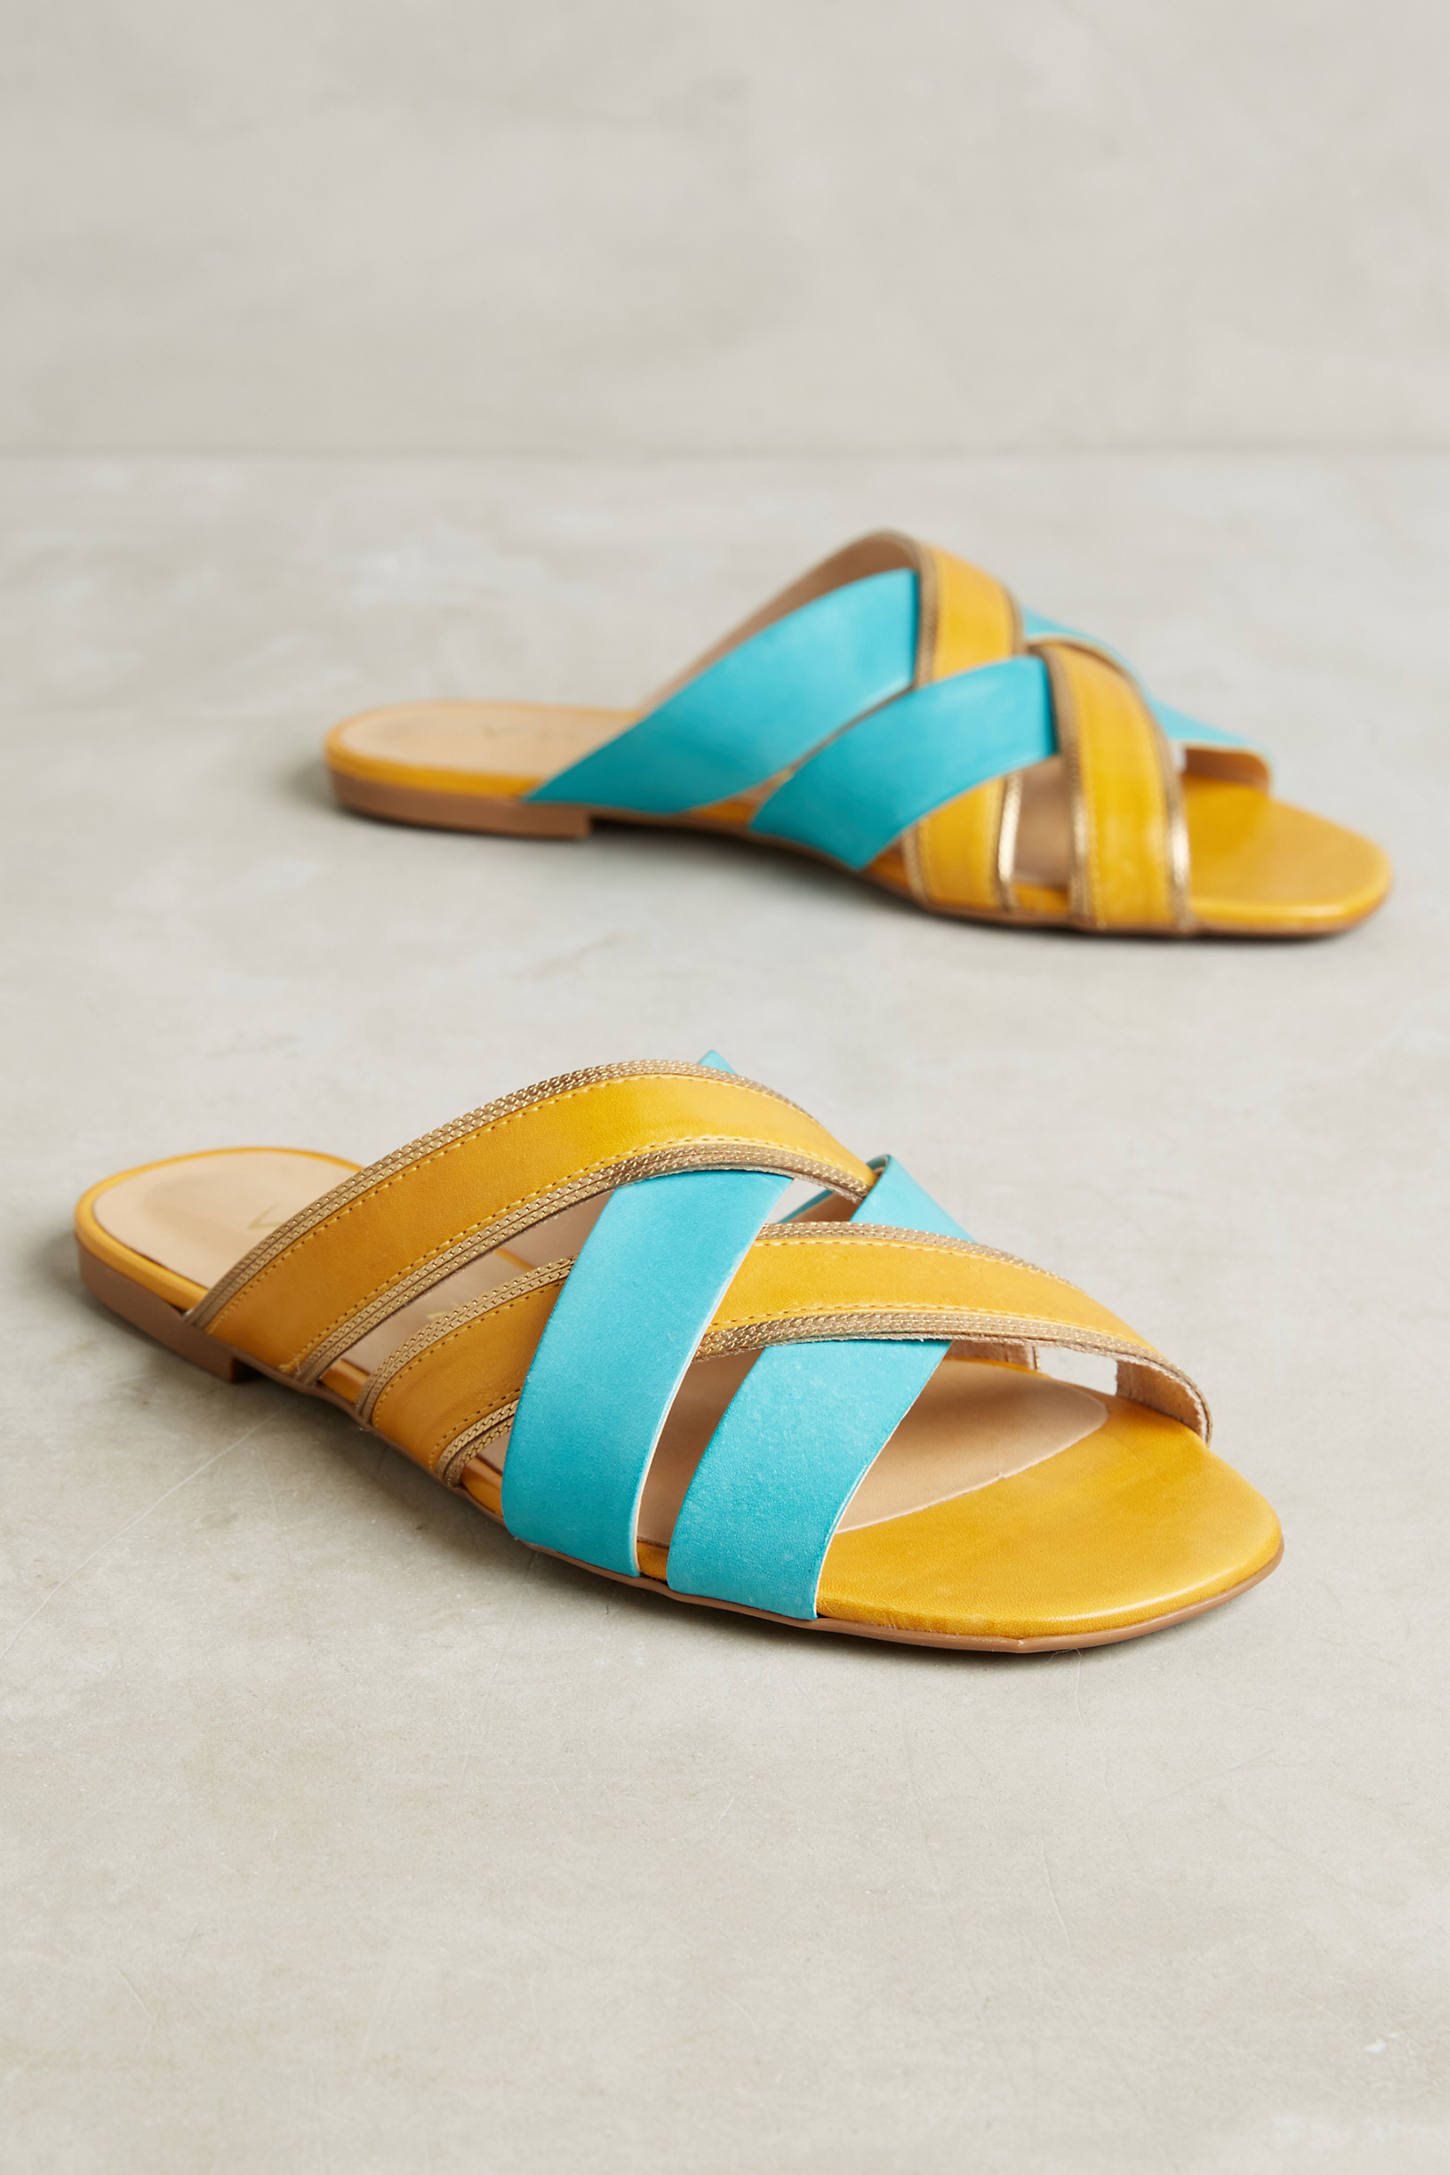 Vicenza Sunny Slide Sandals